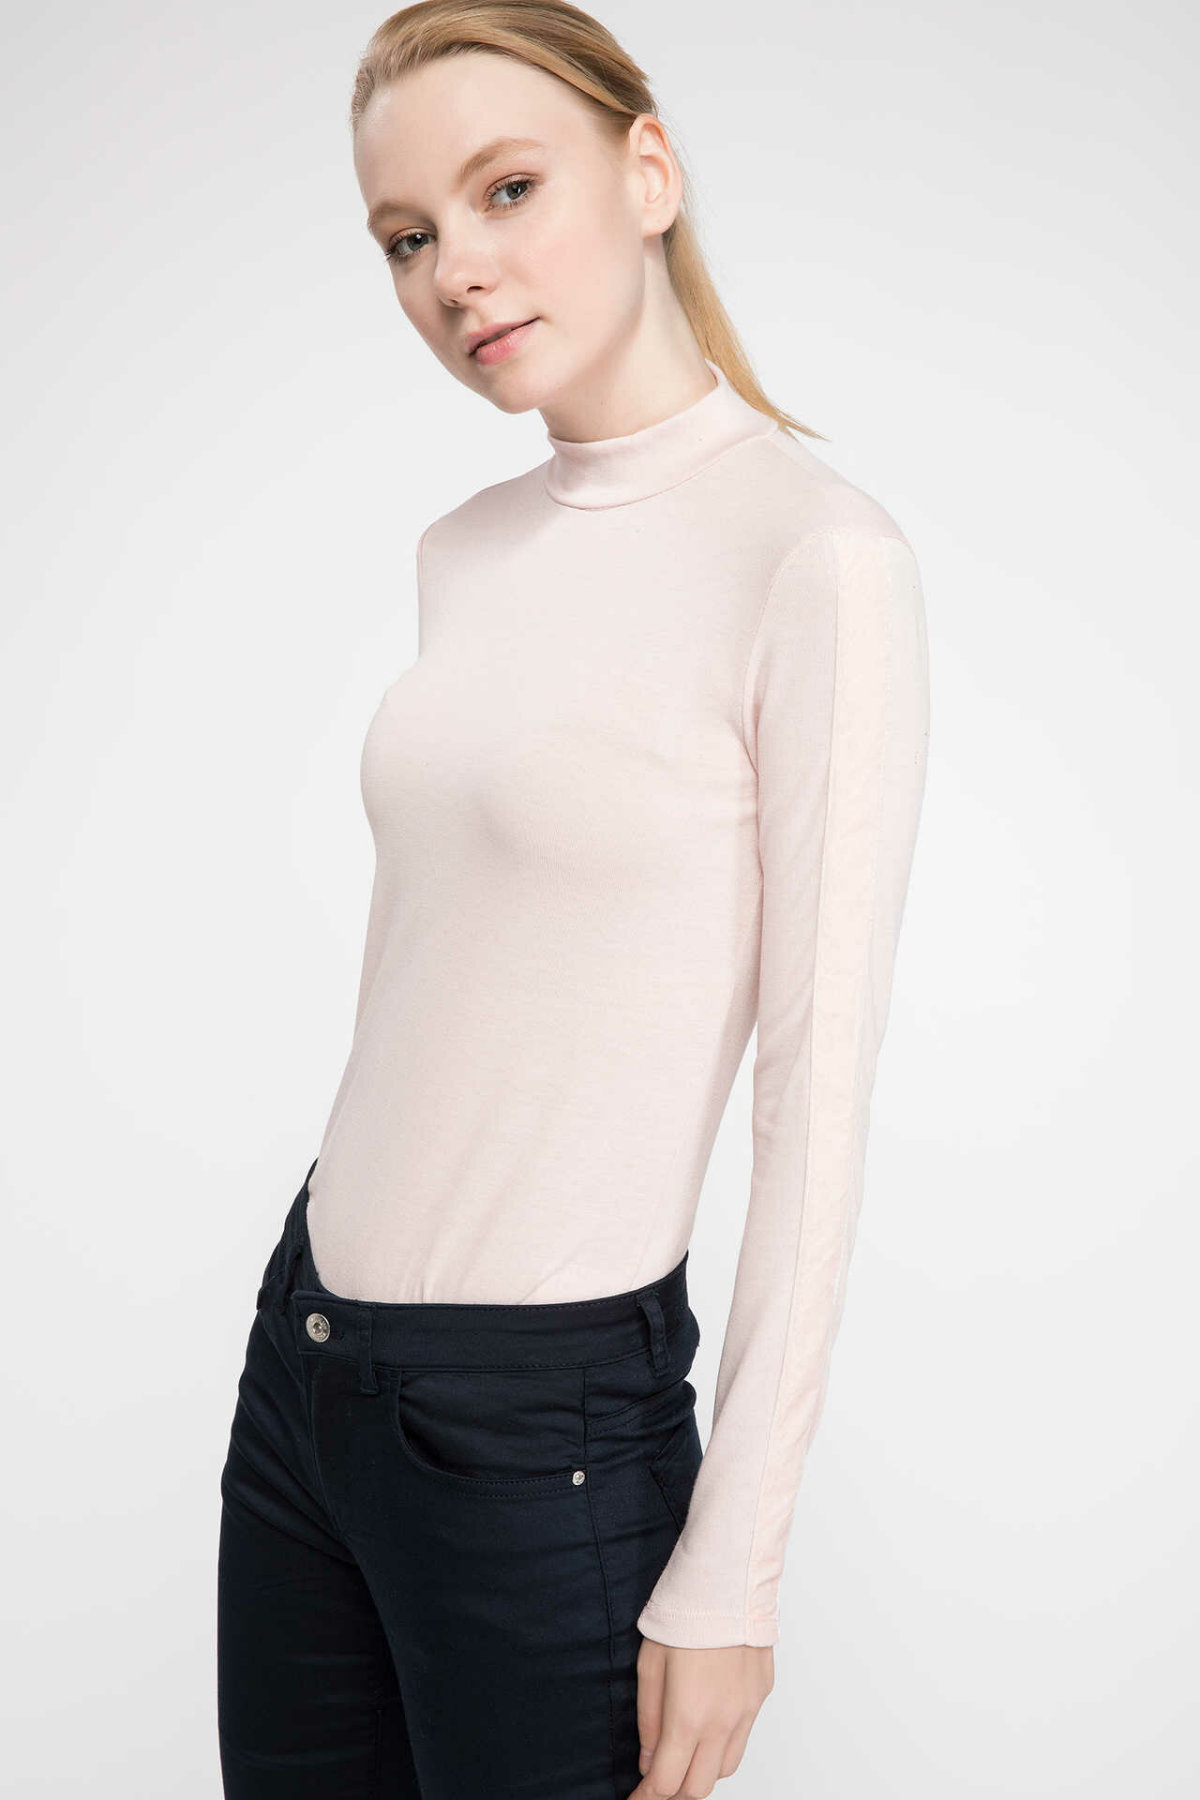 DeFacto Woman Long Sleeve Pullovers Solid Color Women Autumn Knitted Pullovers Body Fit Women Top Cloth-J2586AZ18AU